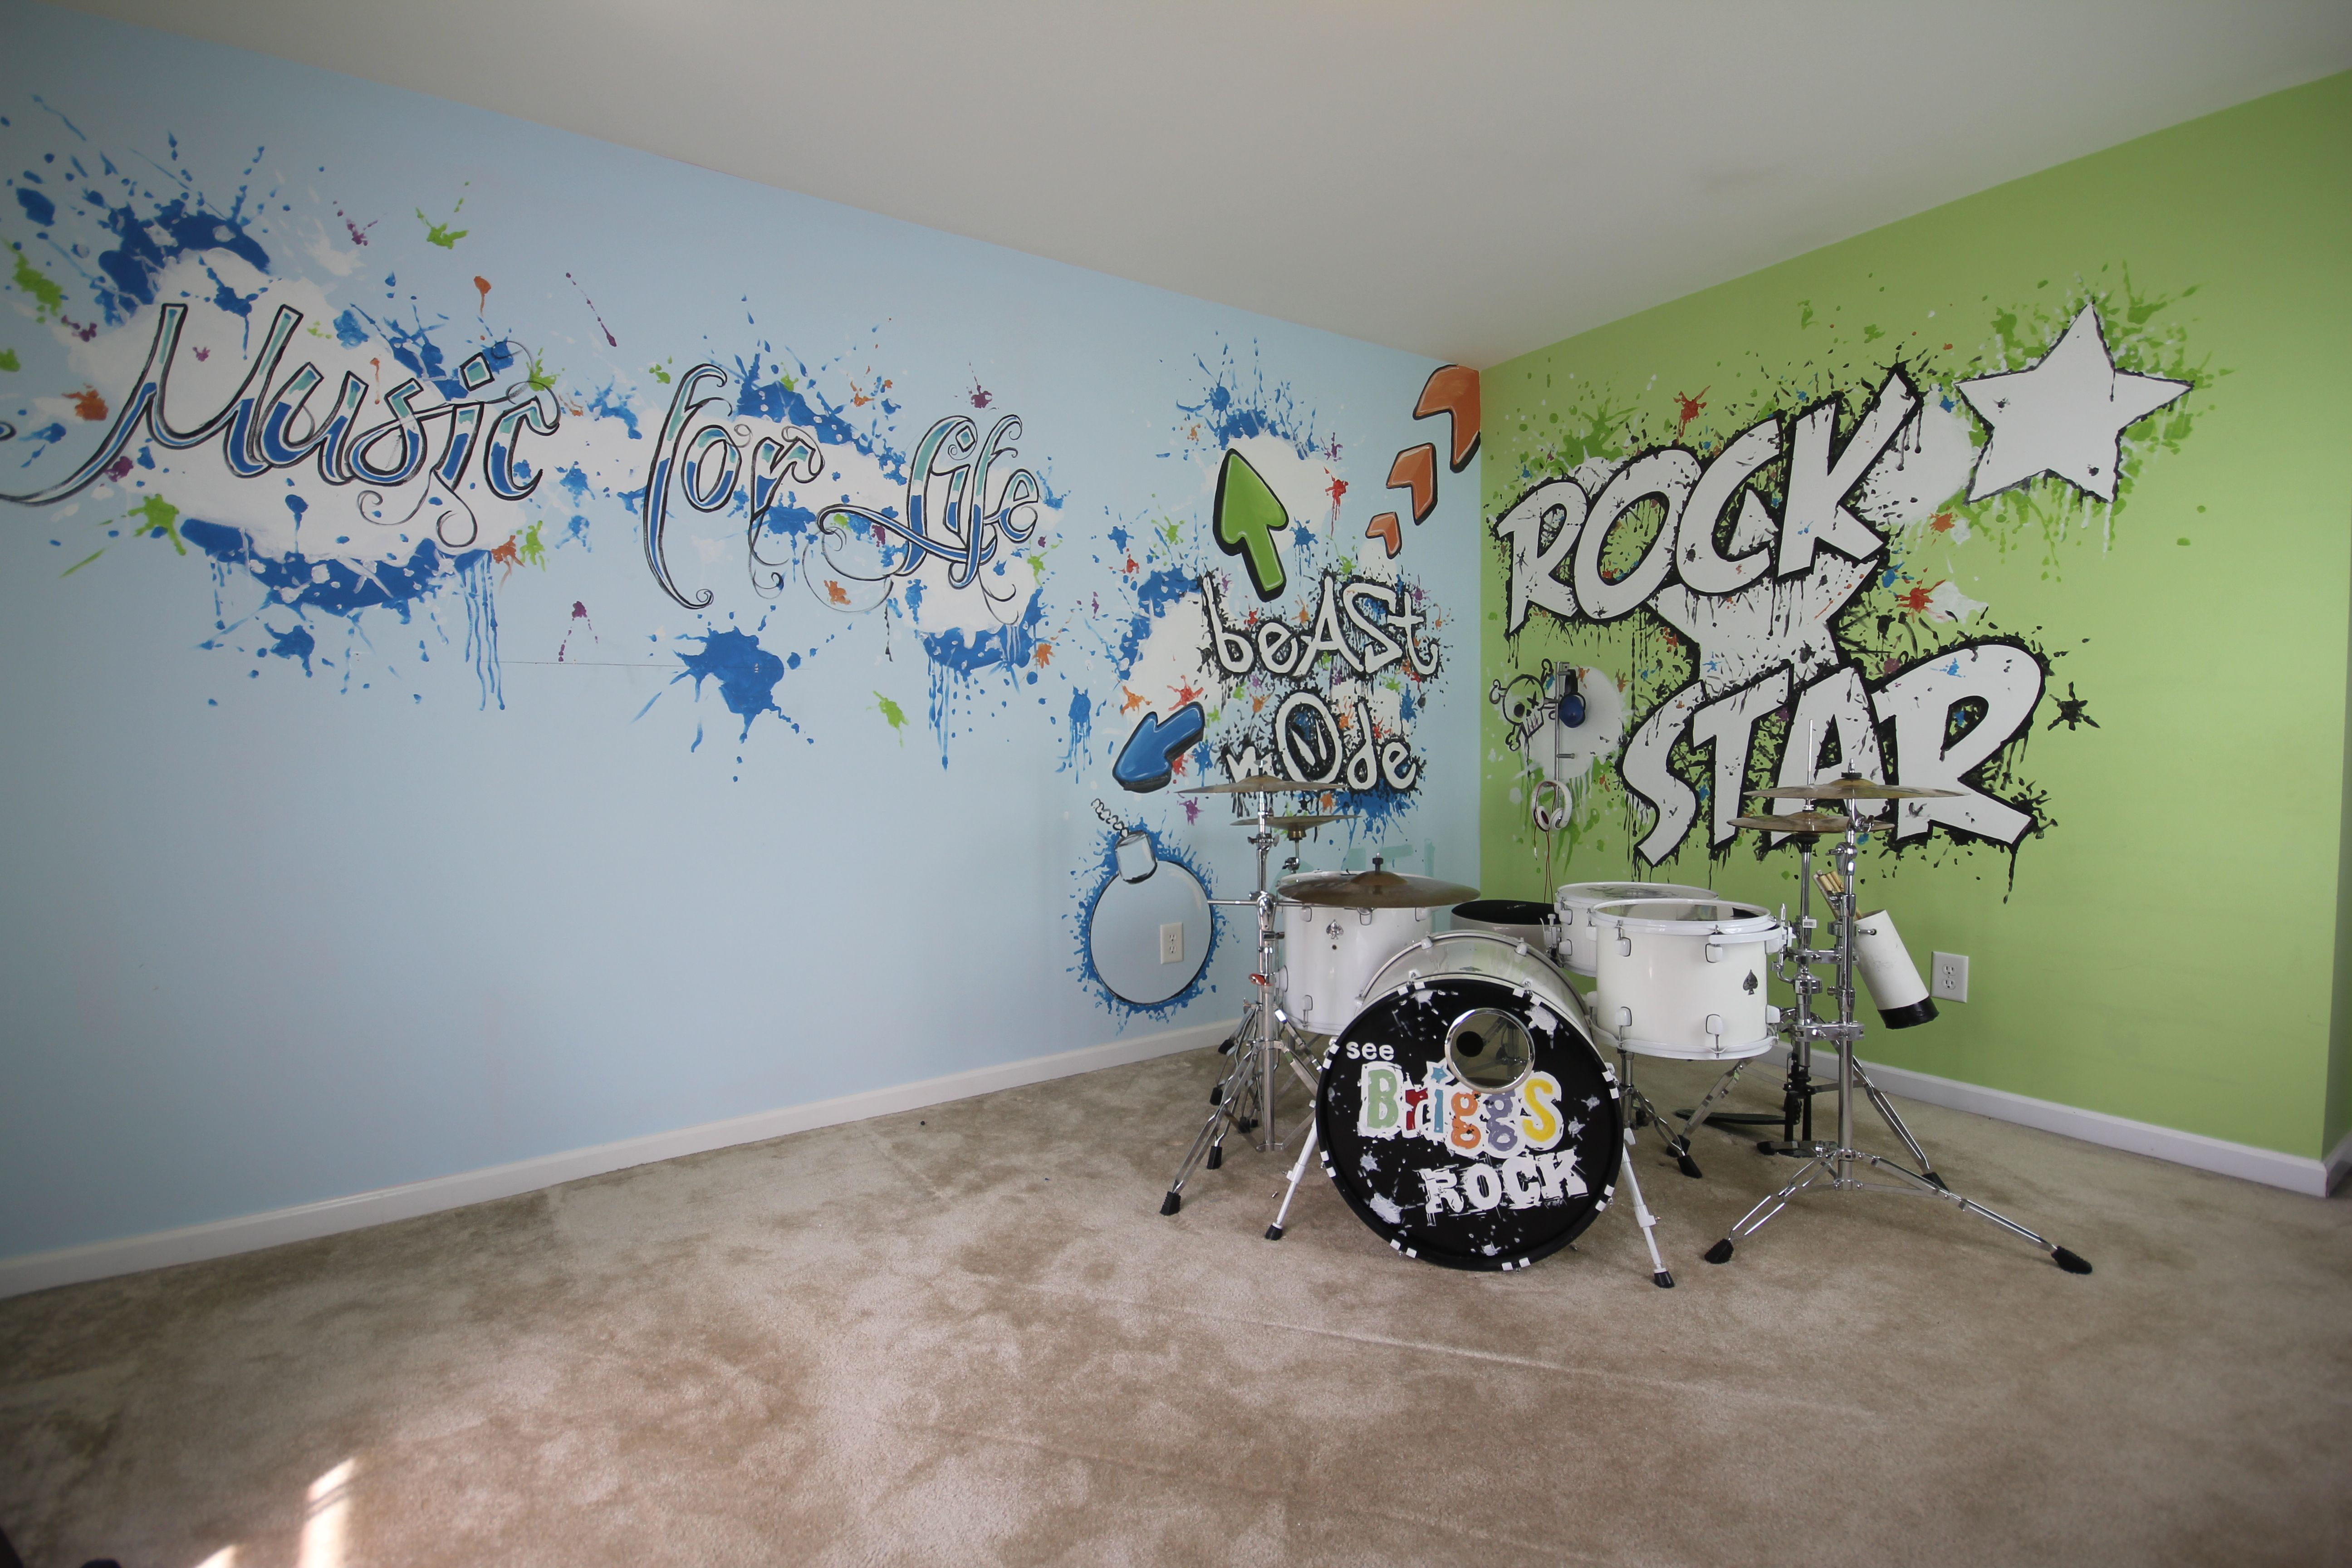 teen music room - Google Search | Ky | Pinterest for Cool Wall Designs With Paint  587fsj